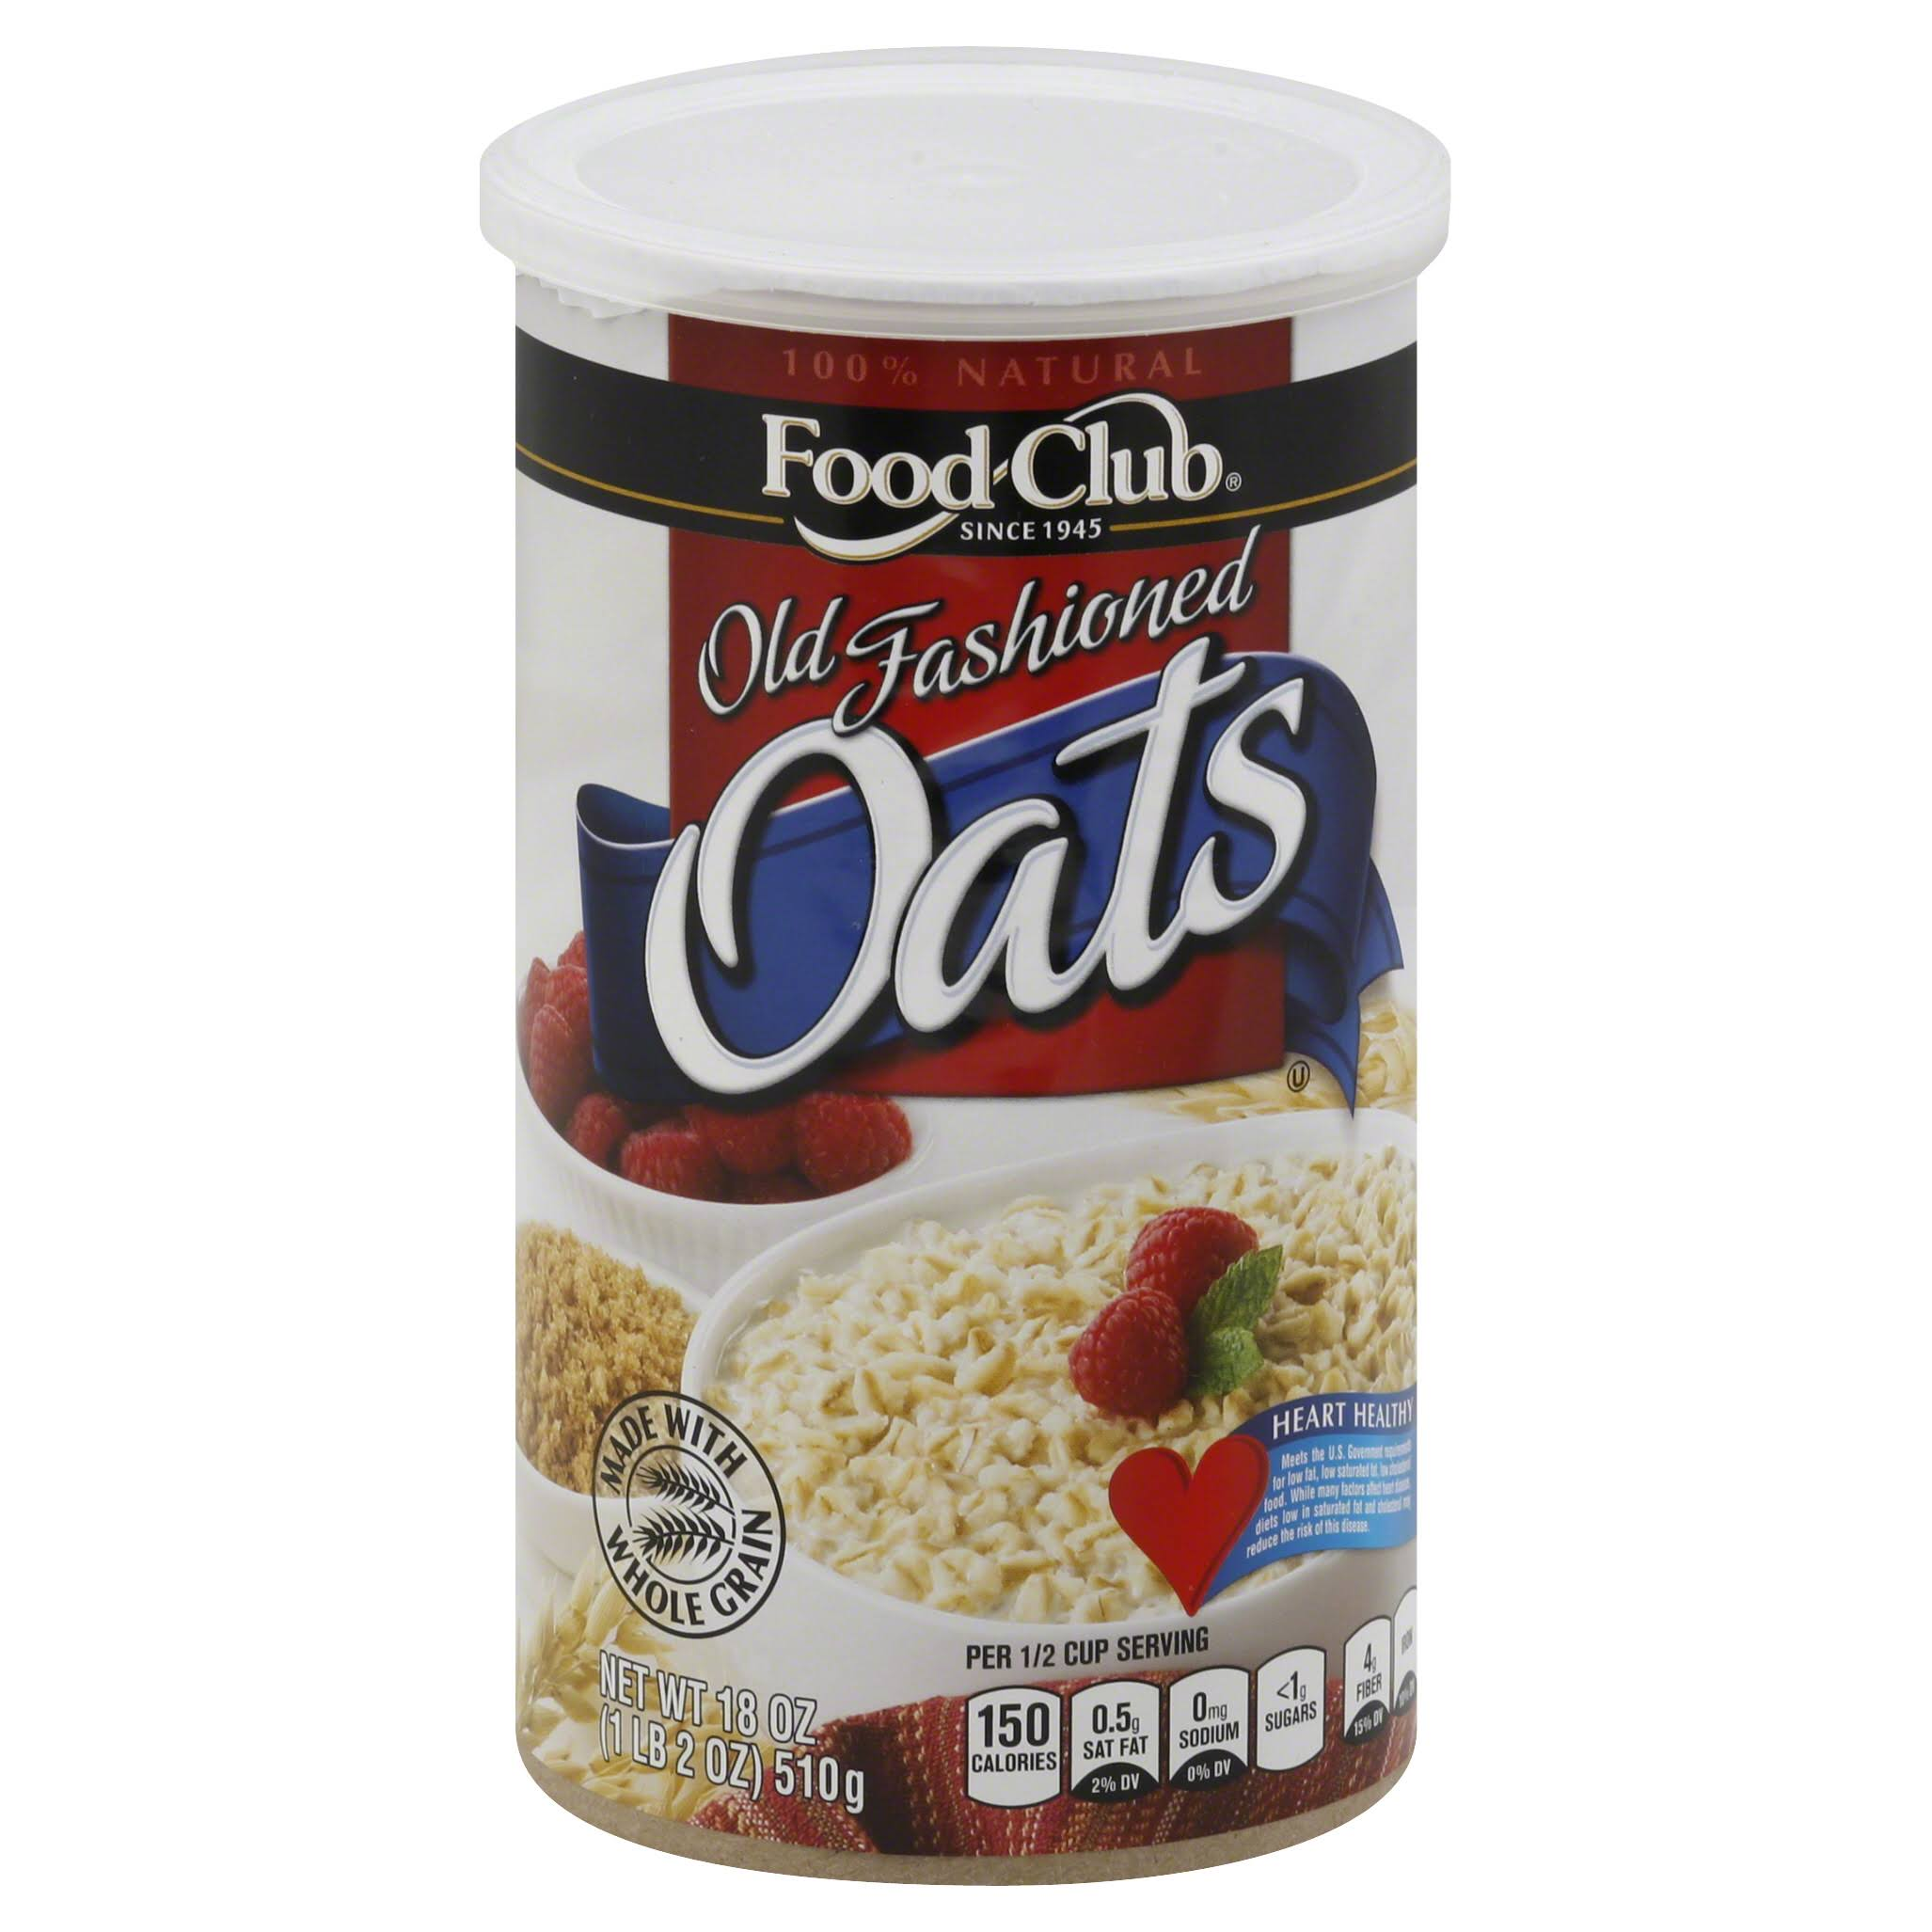 Food Club Oats, Old Fashioned - 18 oz